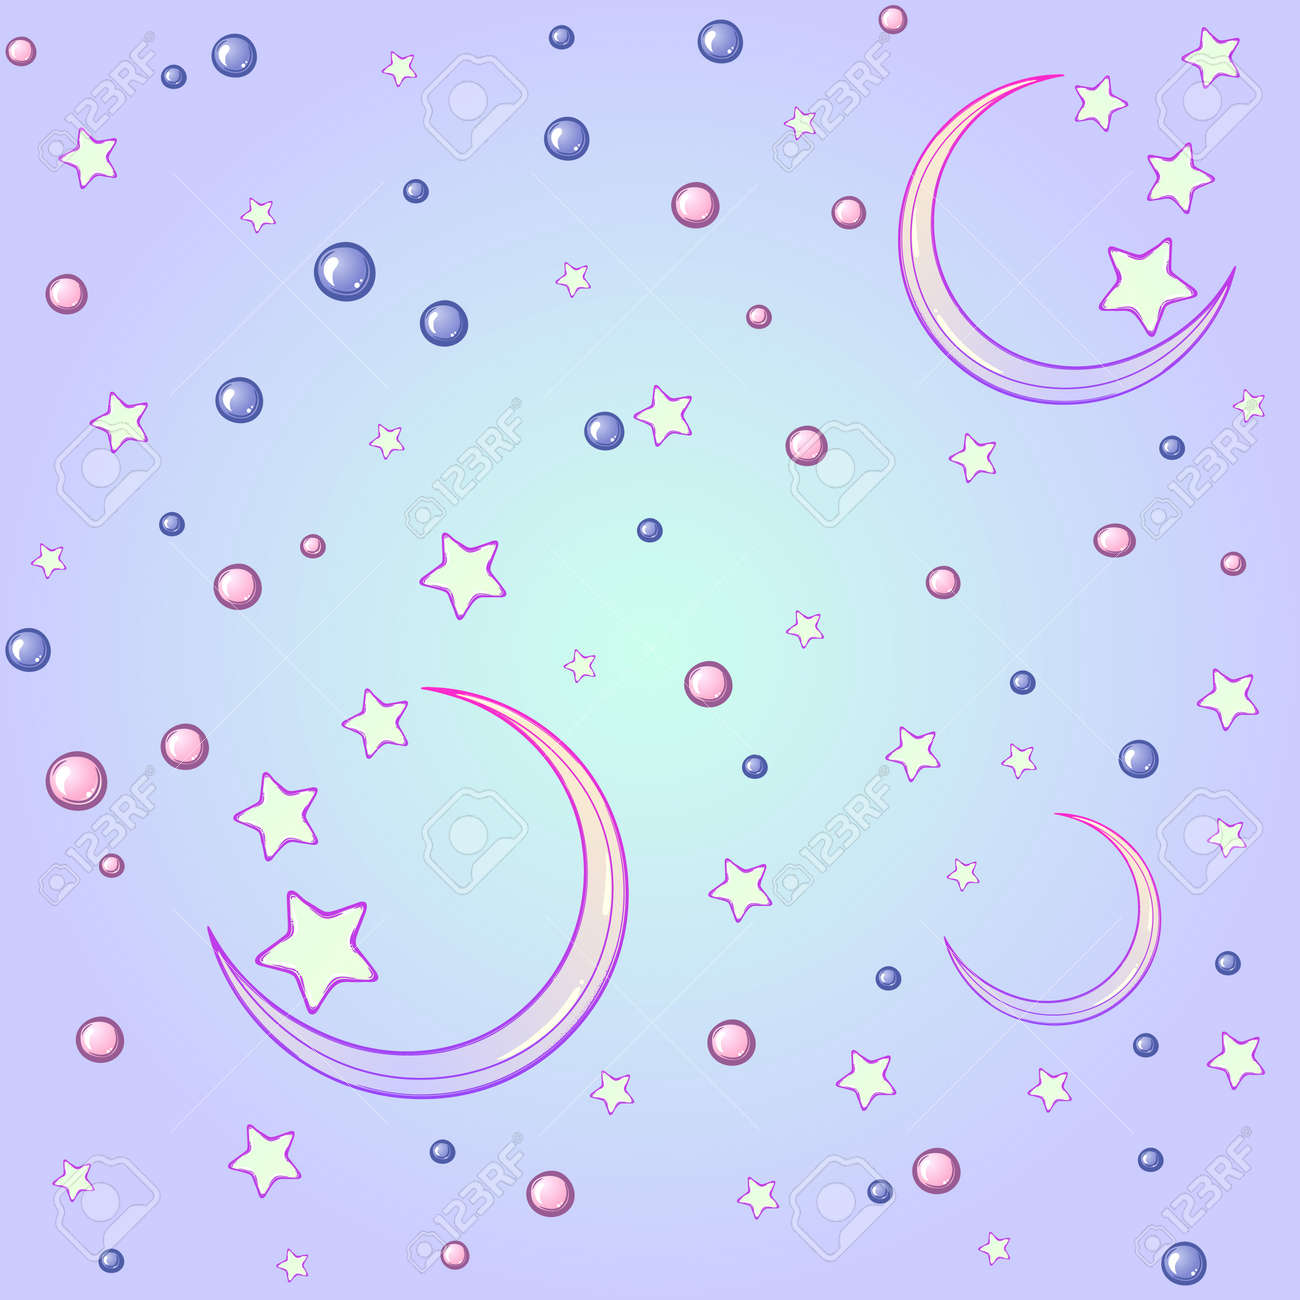 Kawaii Cartoon Style Night Sky With Stars And Moon Crescent Festive Seamless Pattern Pastel